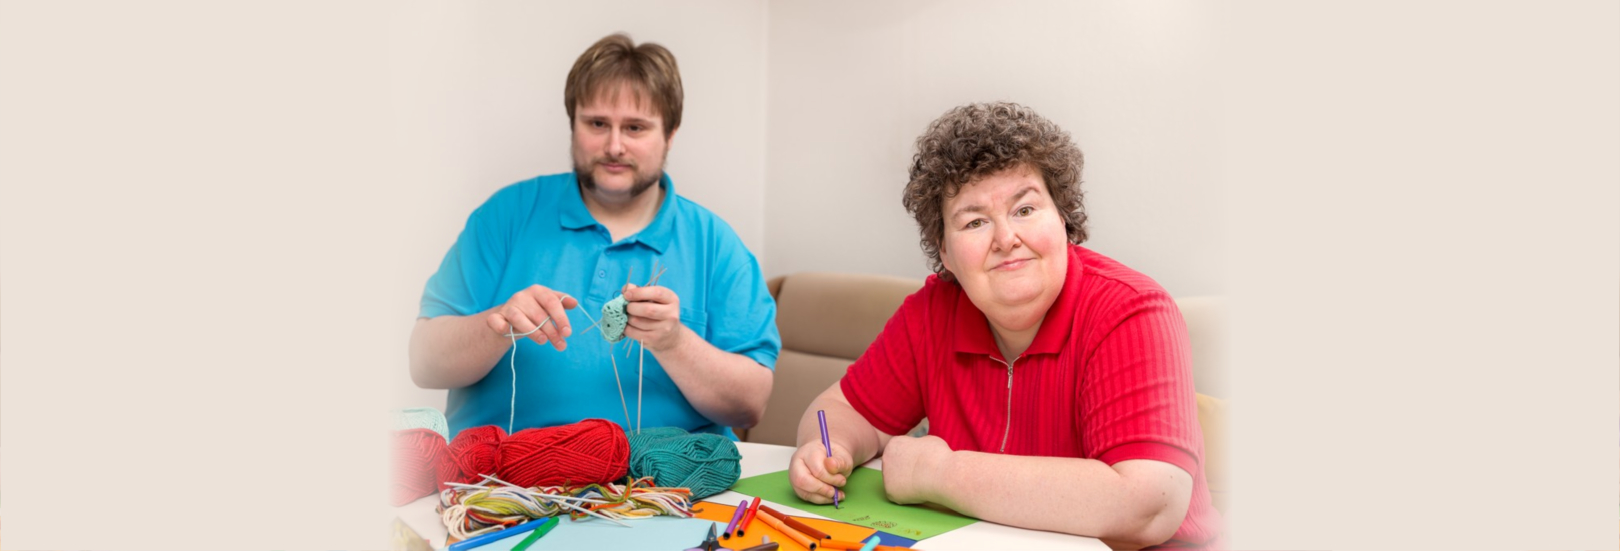 A men and mentally disabled women are tinker